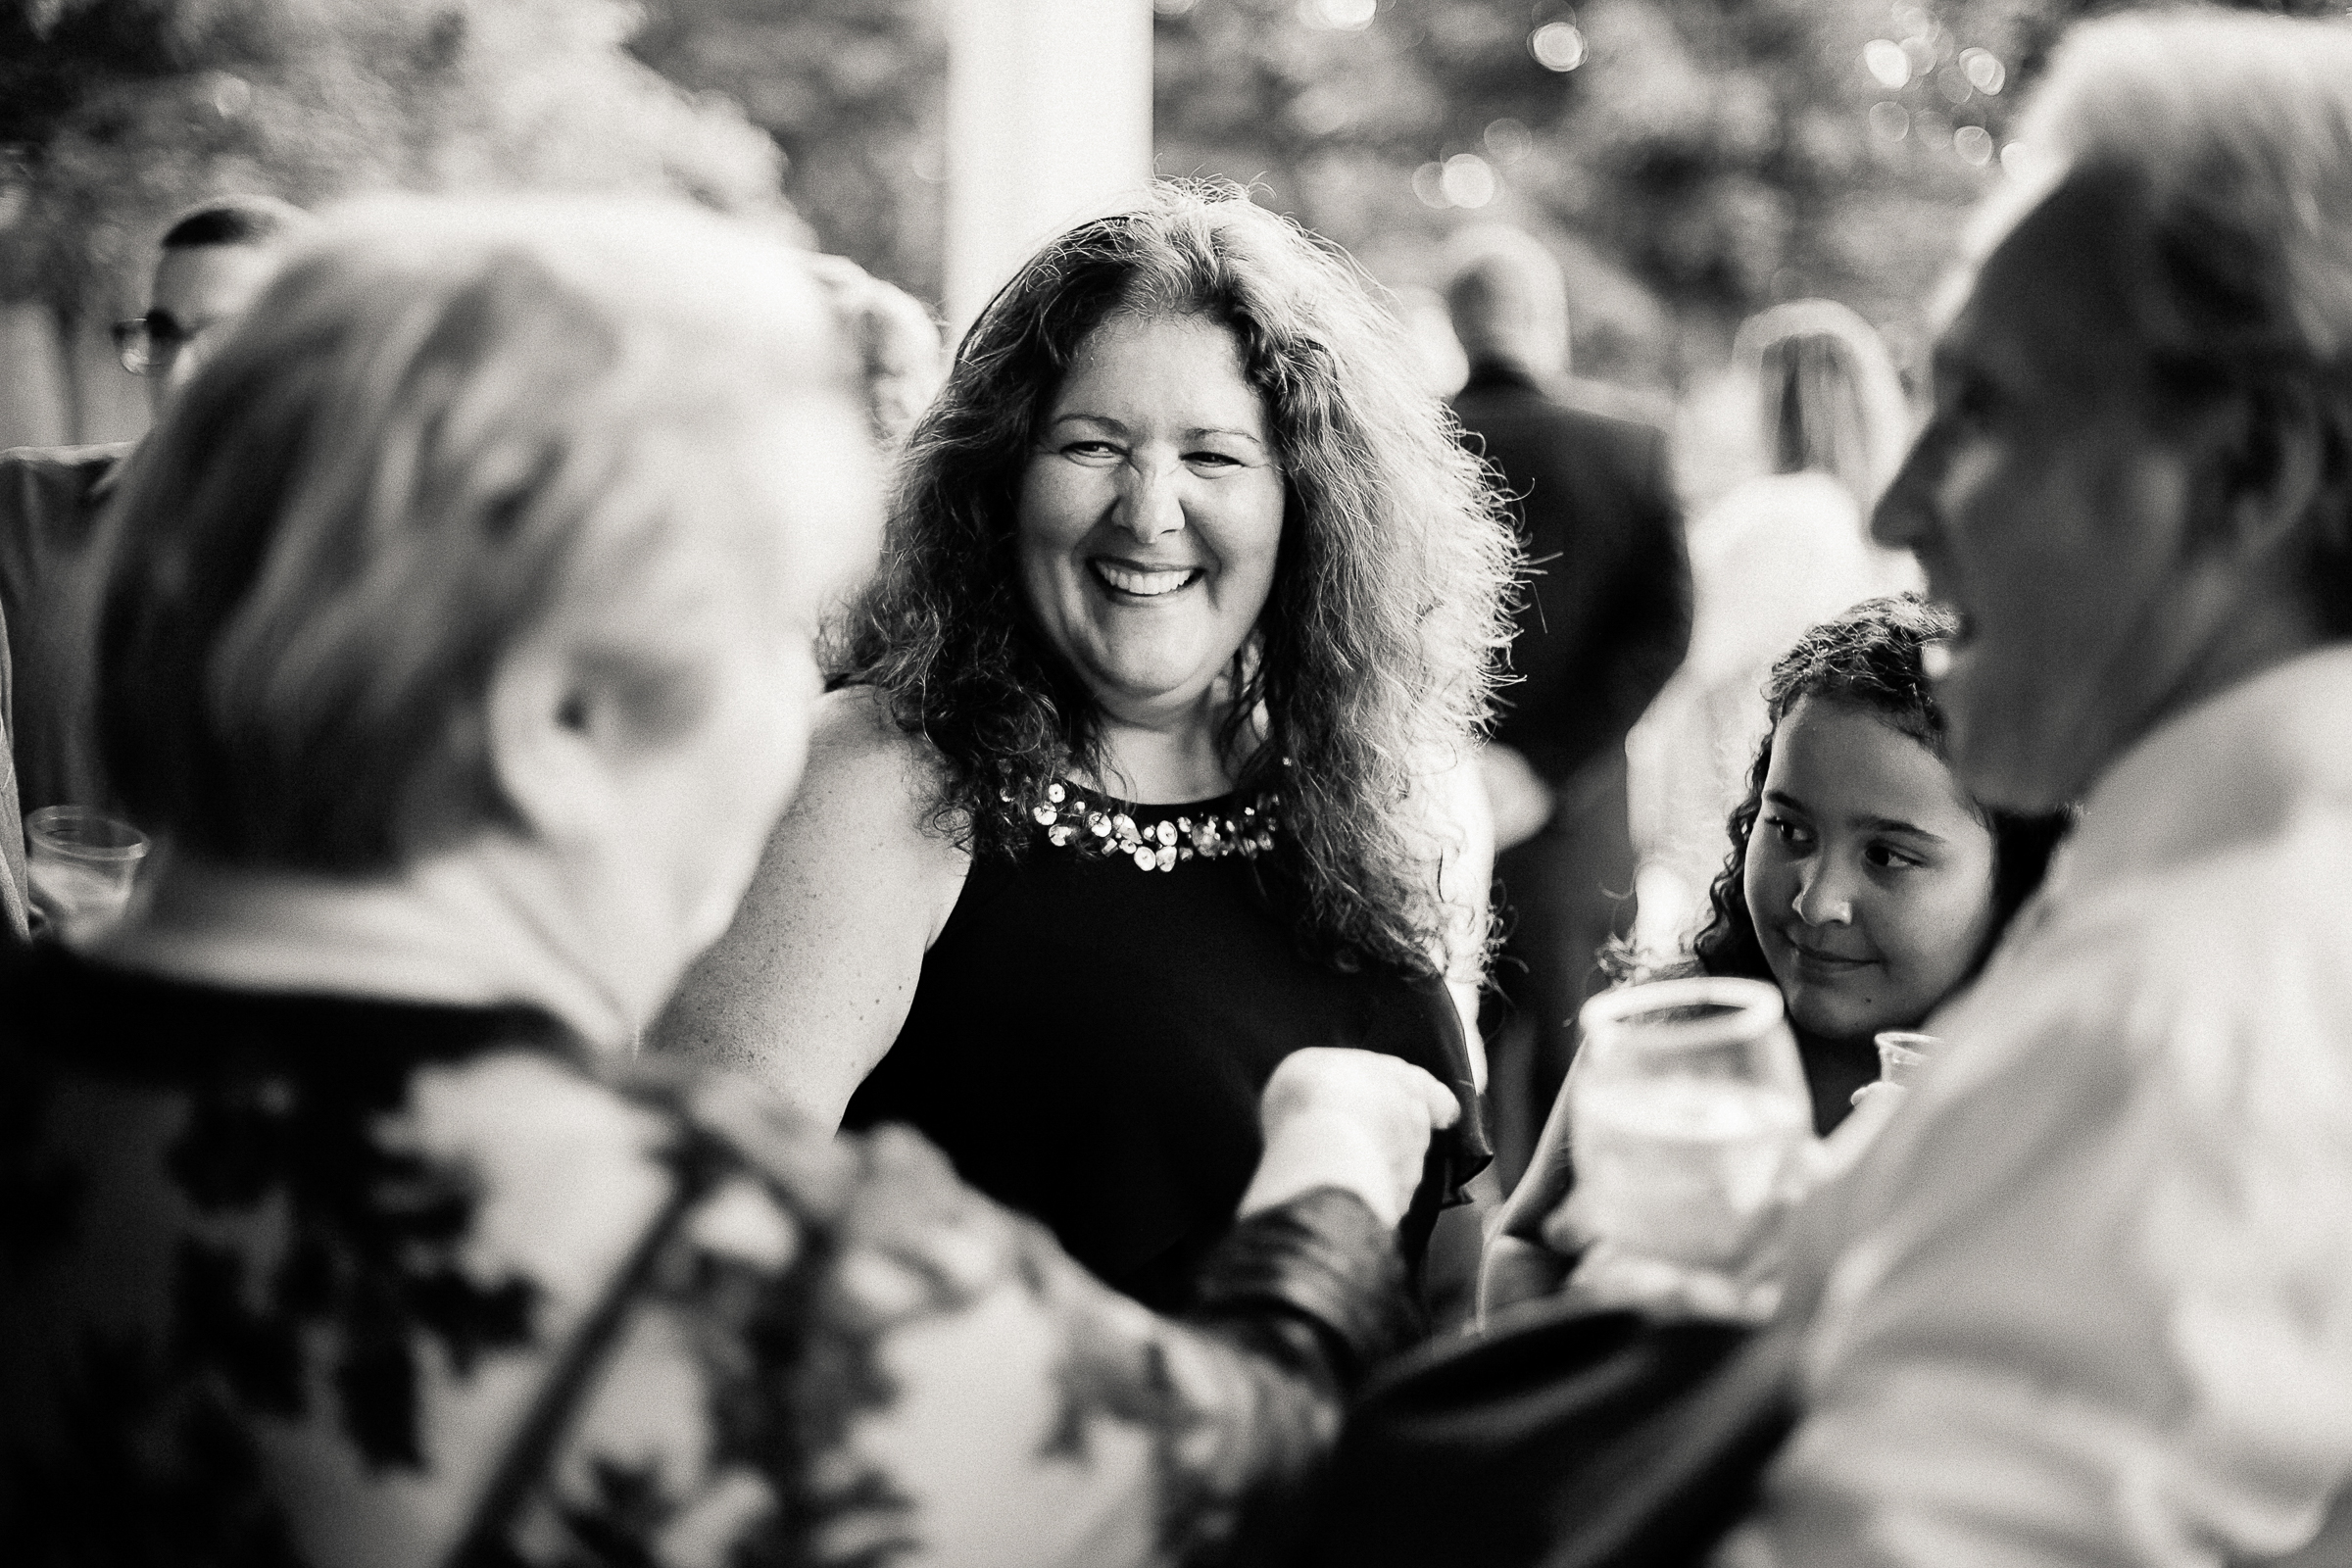 Dragana_Wedding_Photography_Toronto_Black_Creek-66.jpg